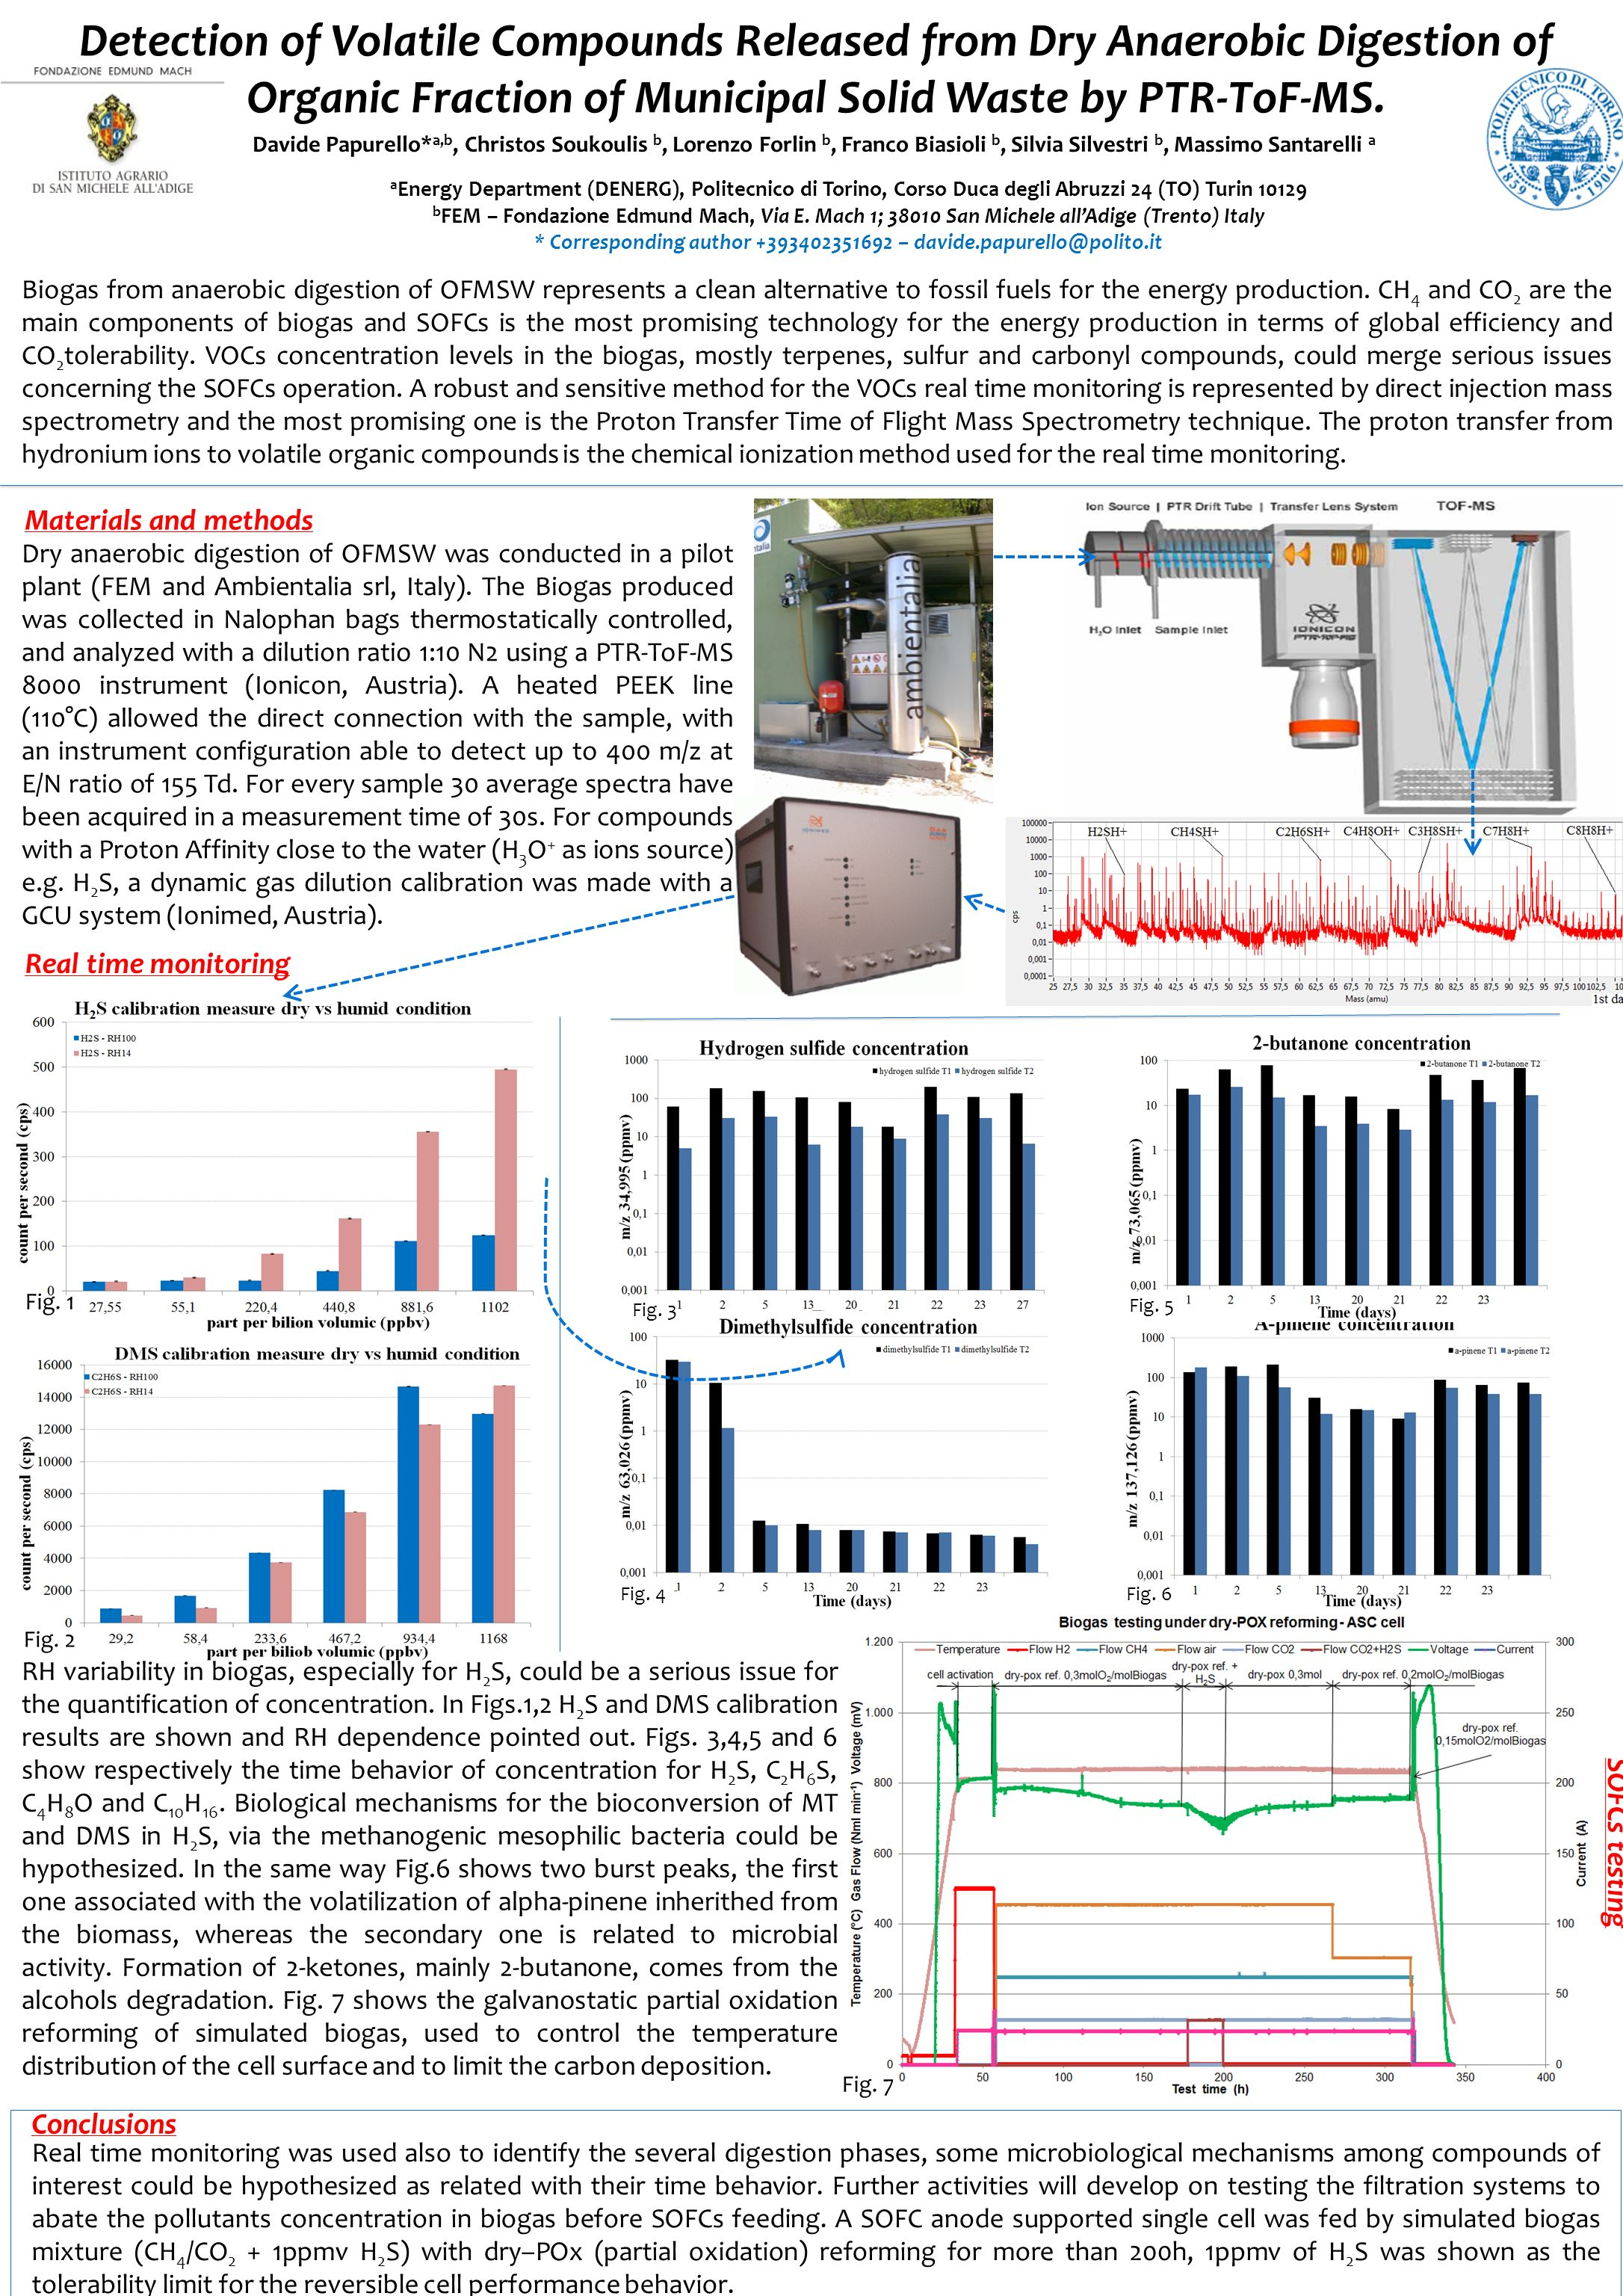 Detection of Volatile Compounds Released from Dry Anaerobic Digestion of Organic Fraction of Municipal Solid Waste by PTR-ToF-MS.